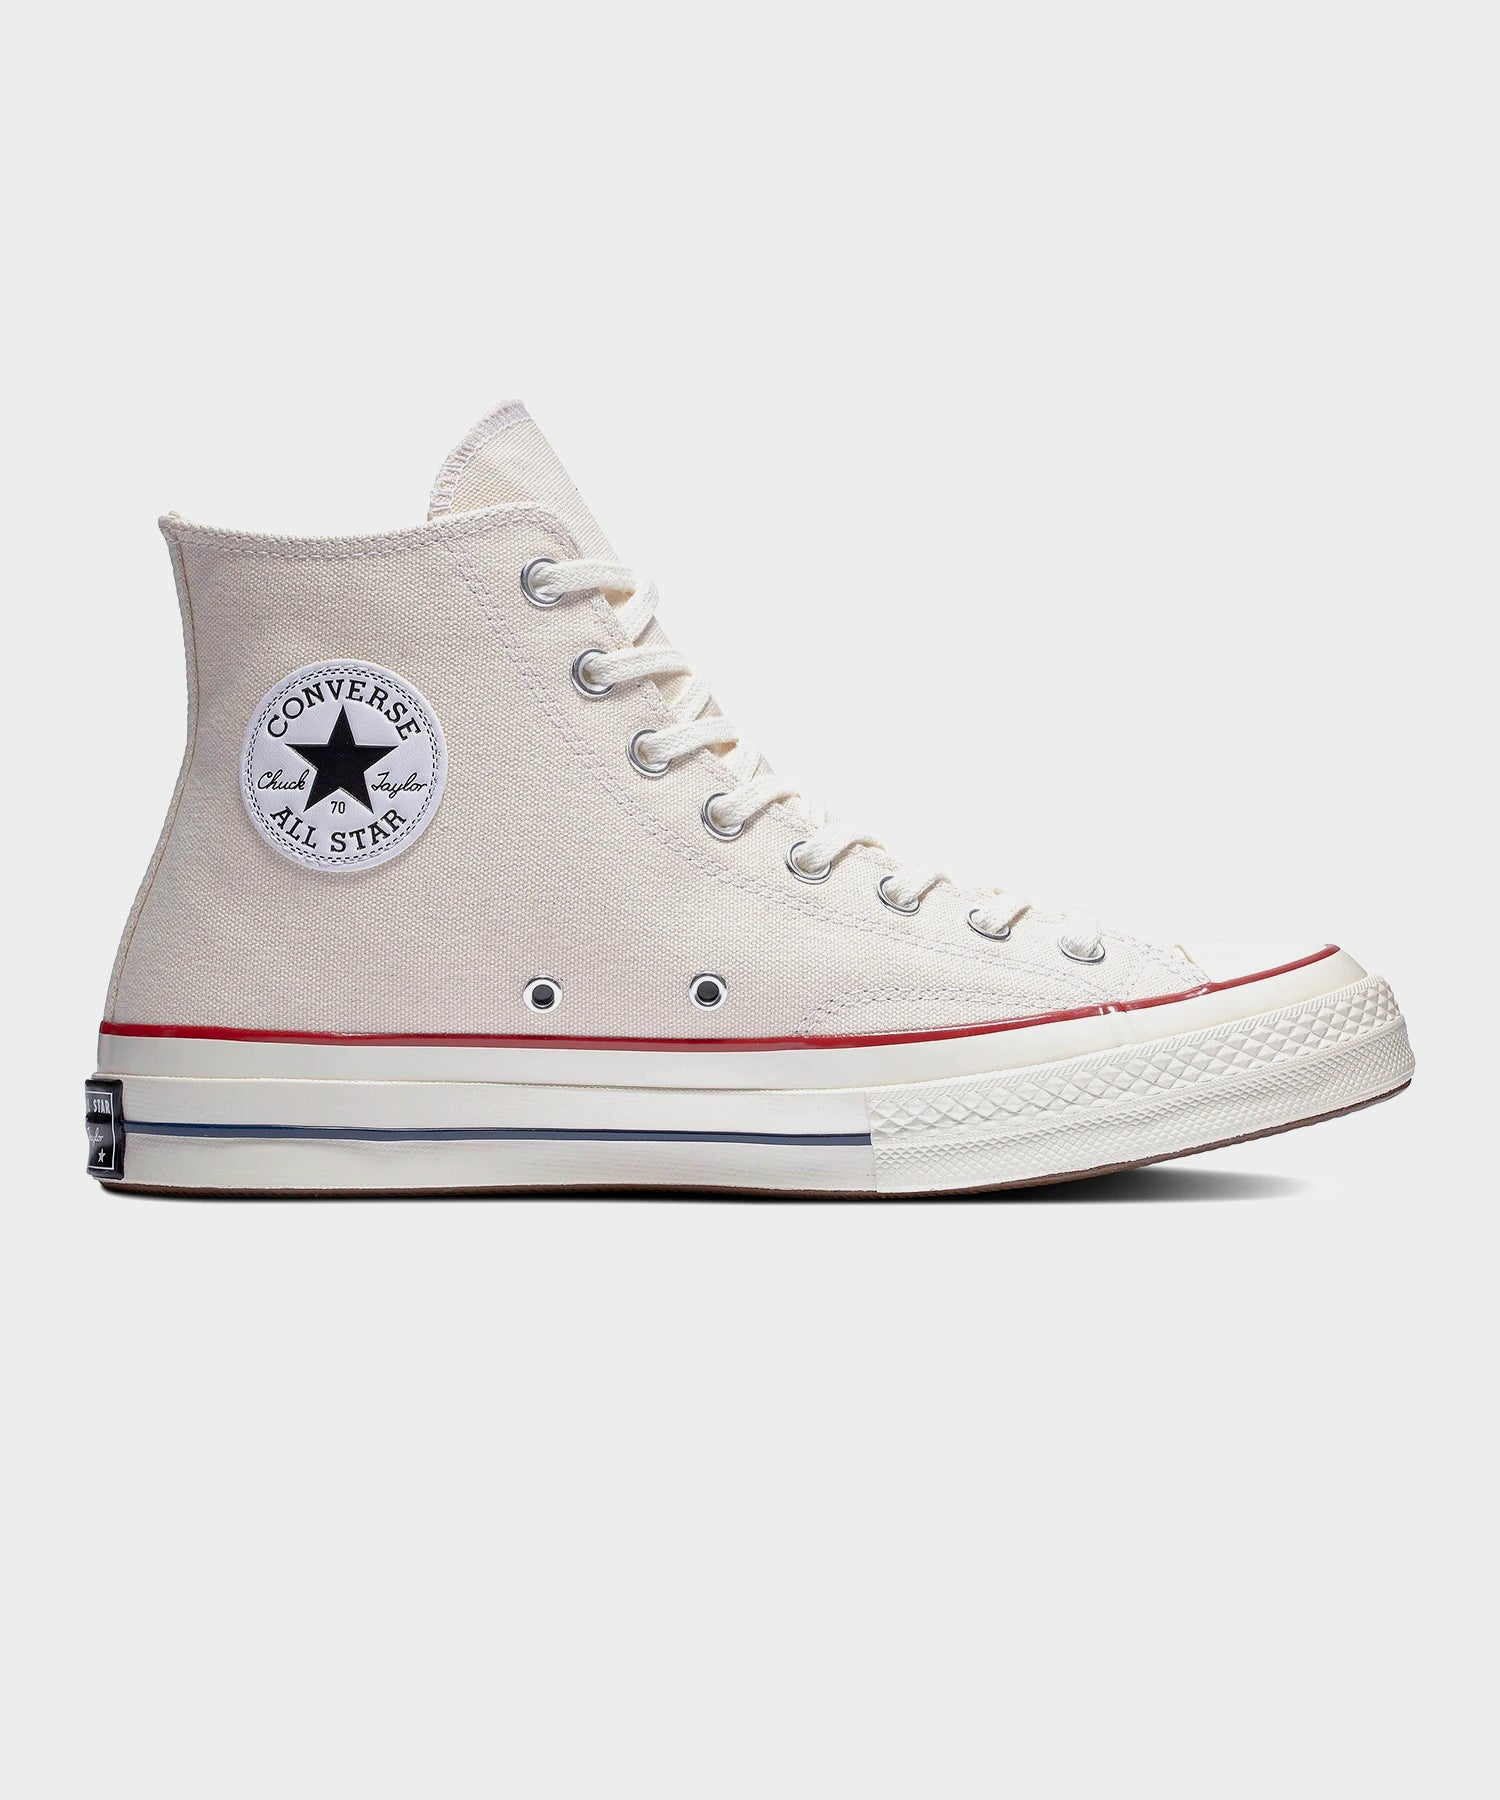 Converse Chuck 70 High Top Parchment